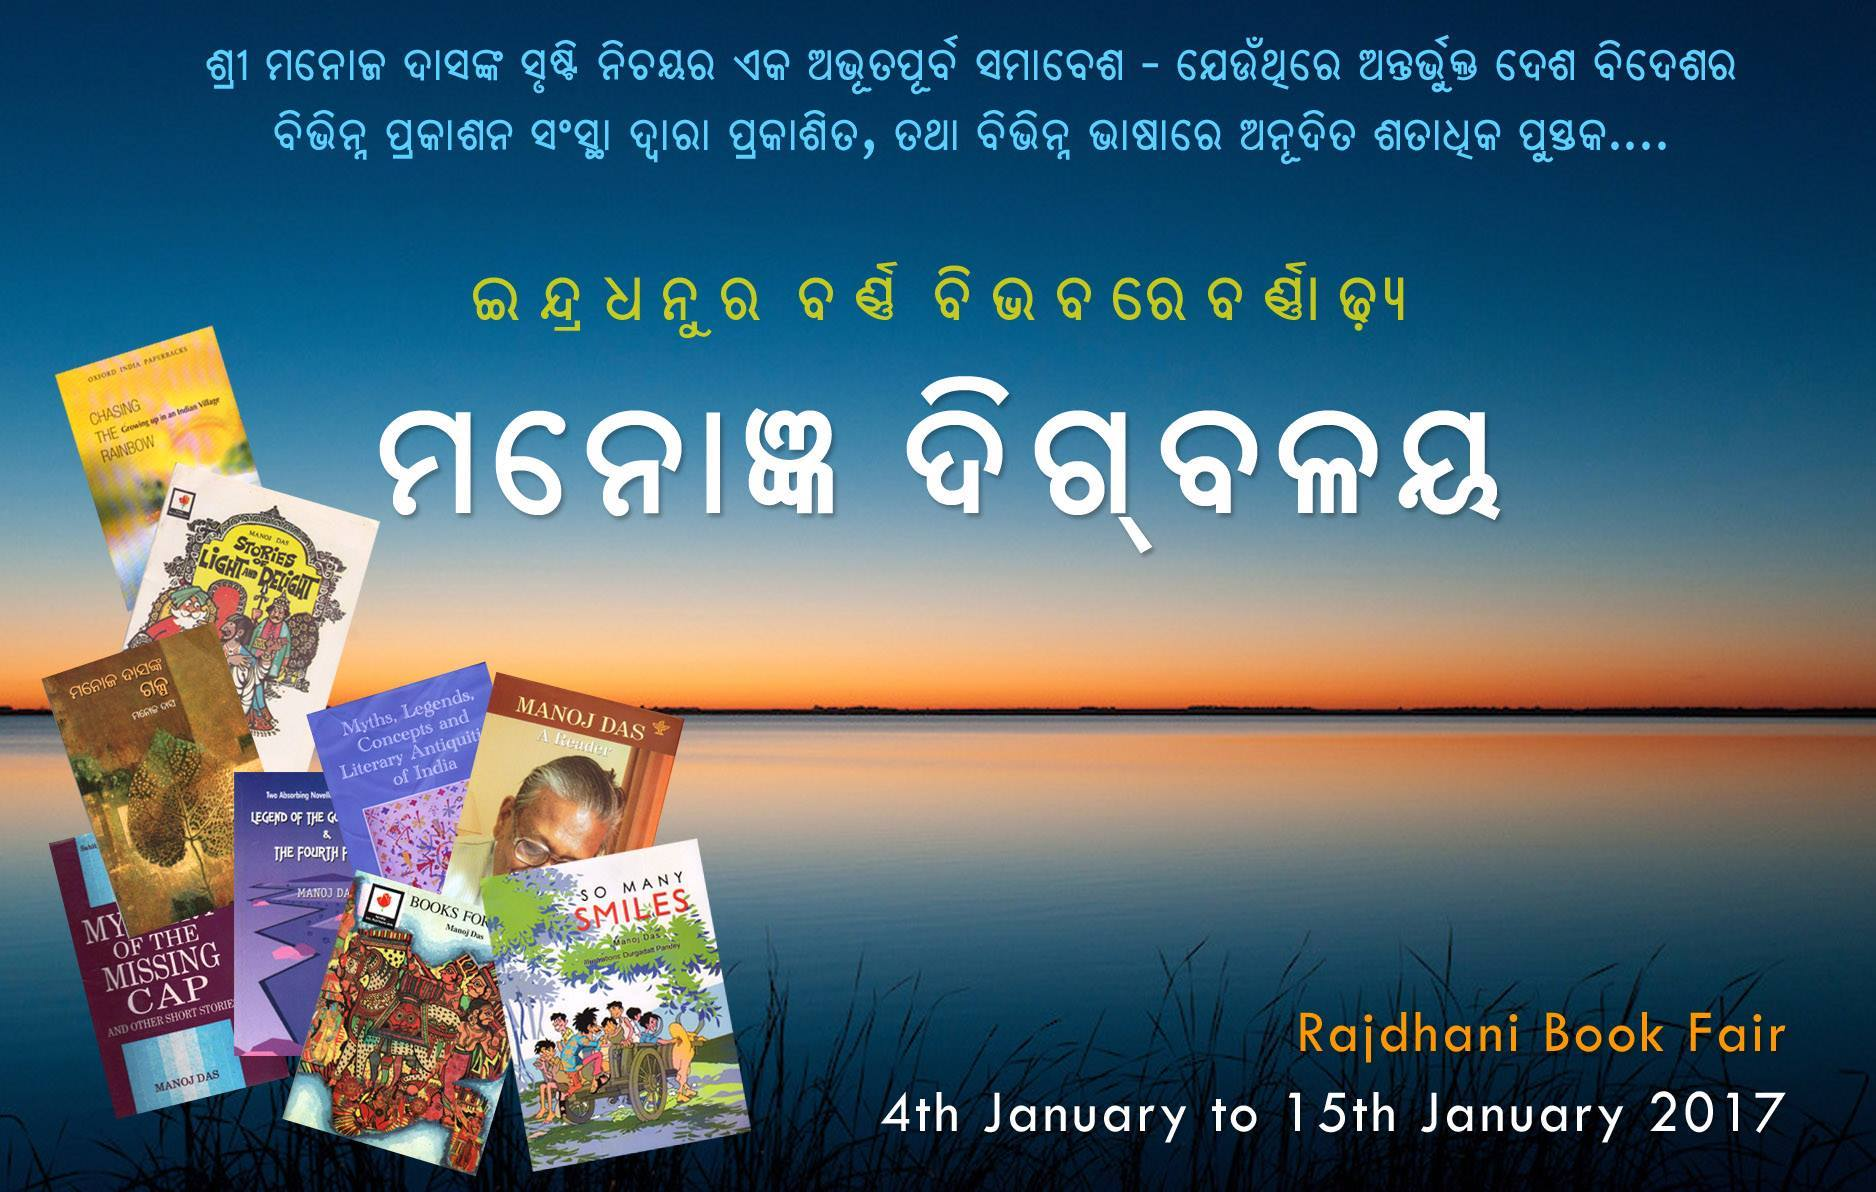 Manoj Das rajdhani book fair 2017 bhubaneswar buzz